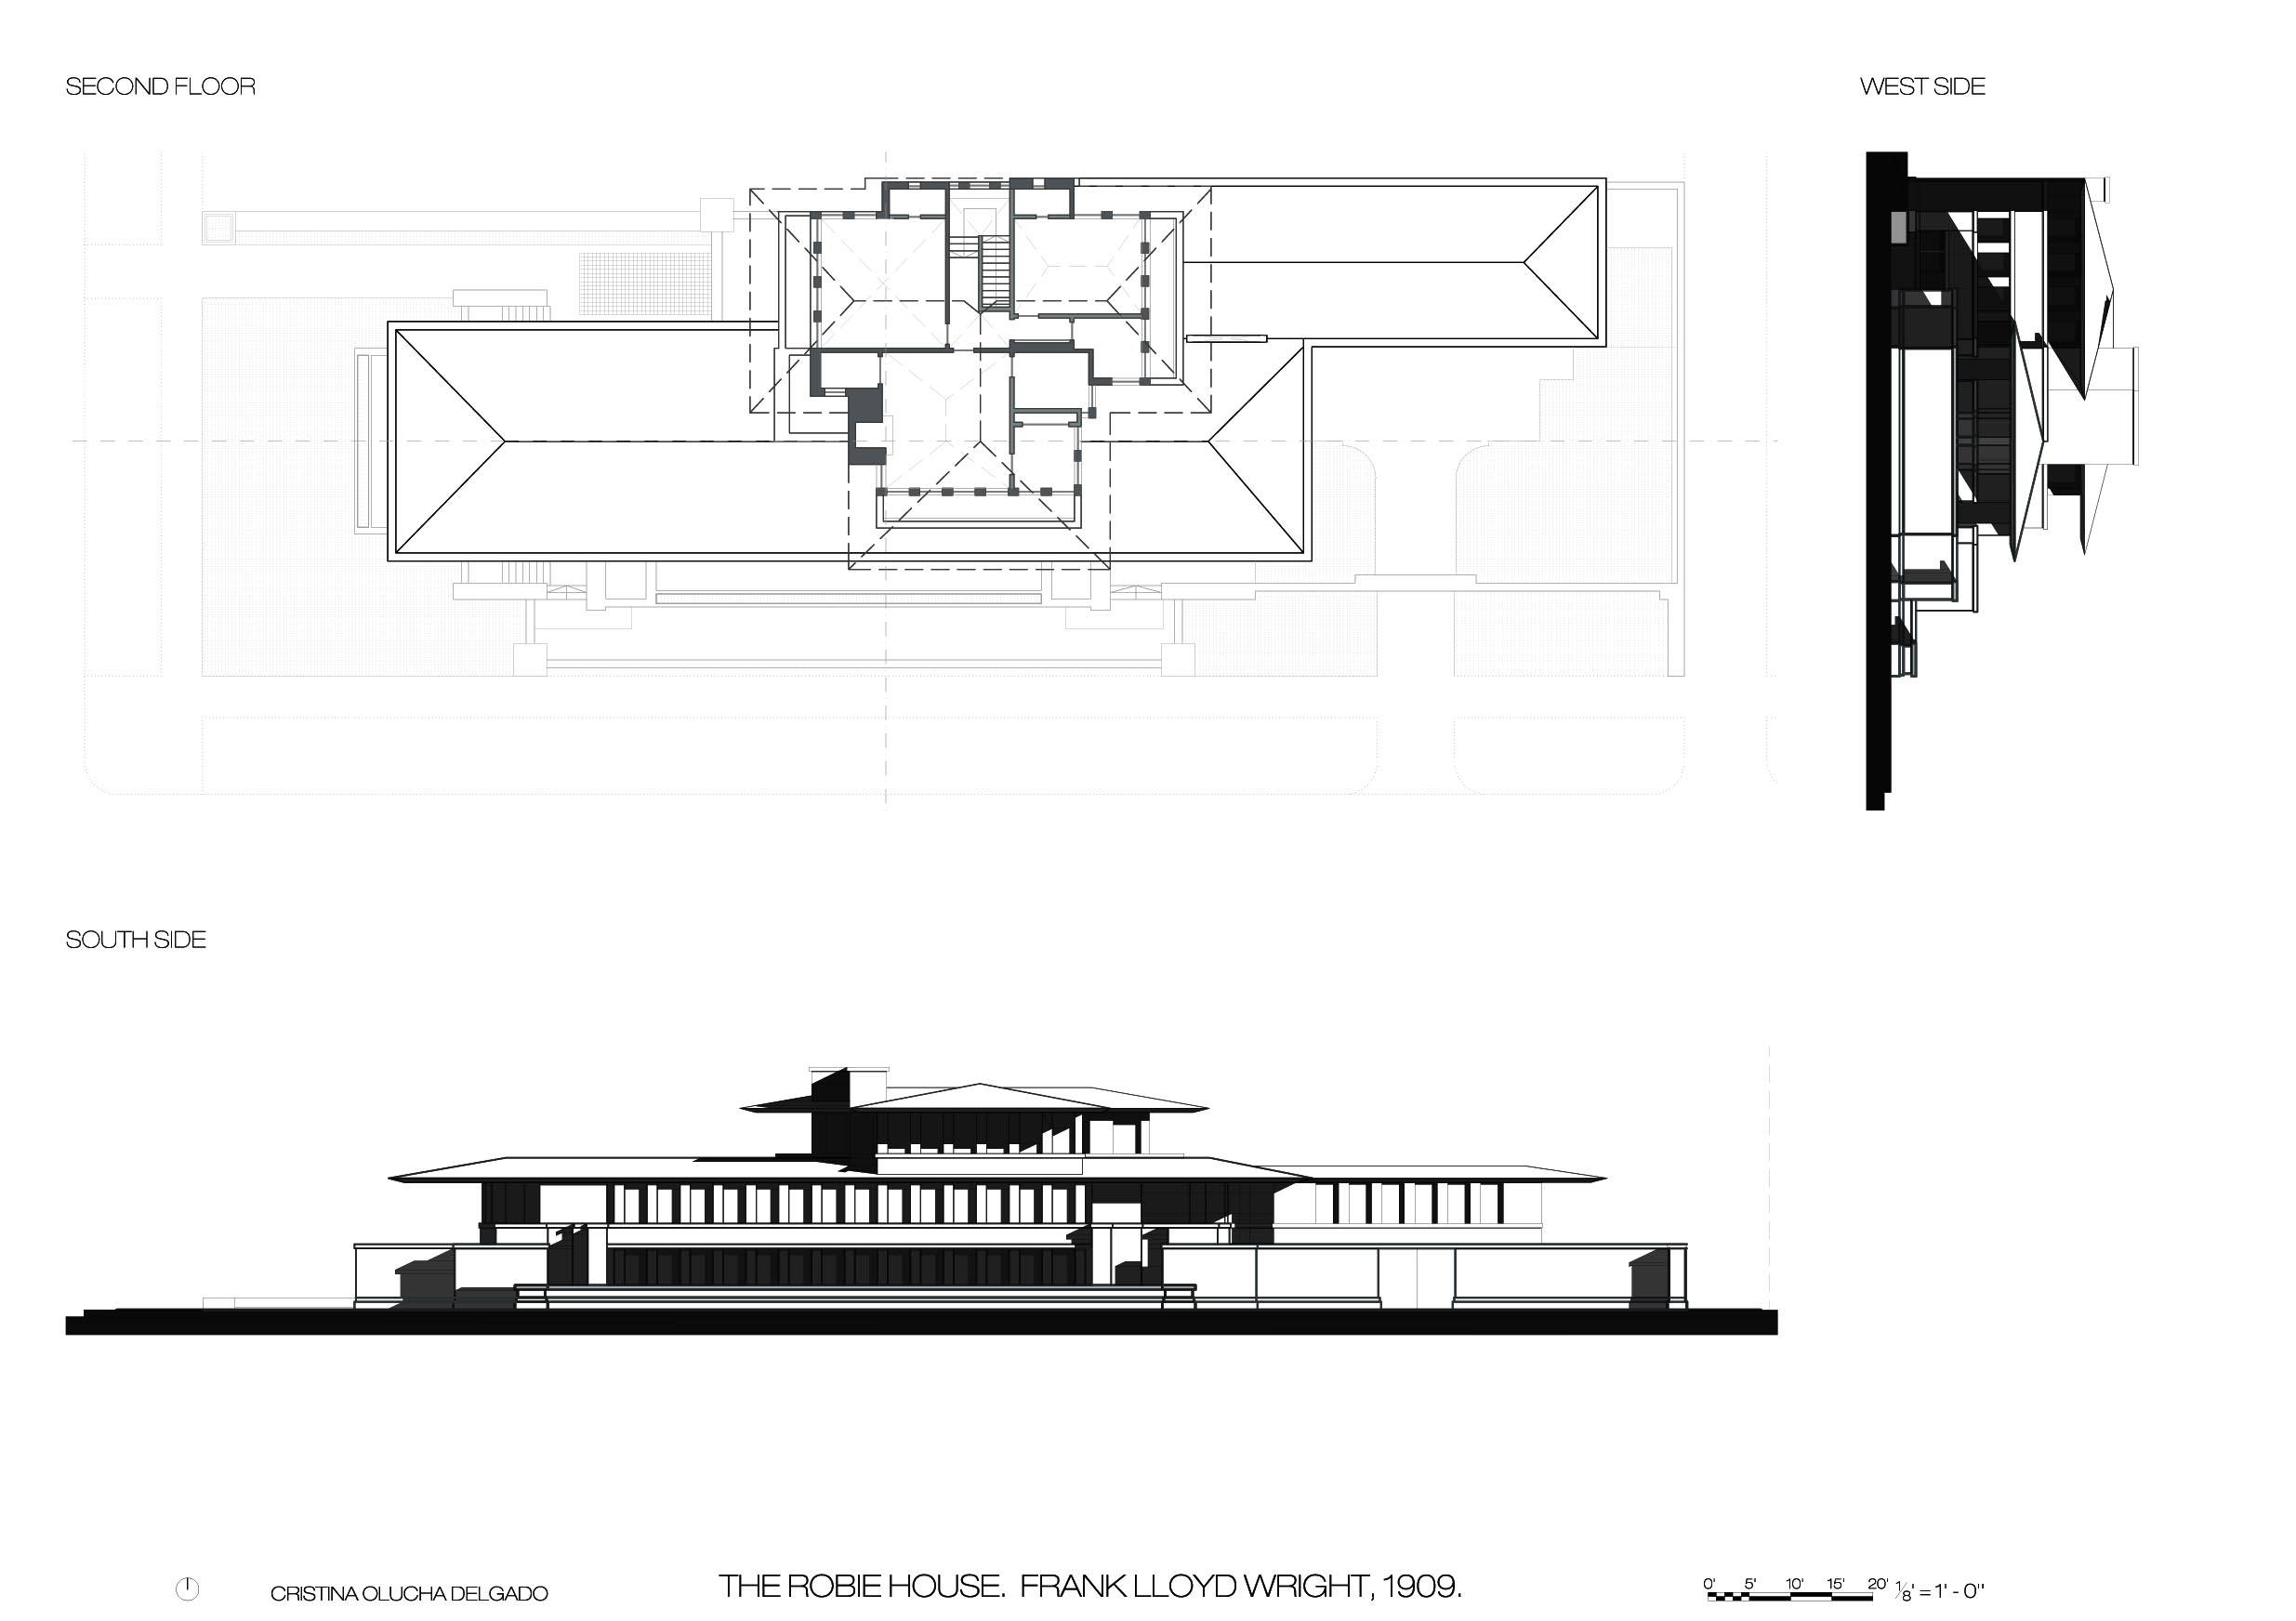 Frank Lloyd Wright Robie House Chicago USA 1910 – Atlas of